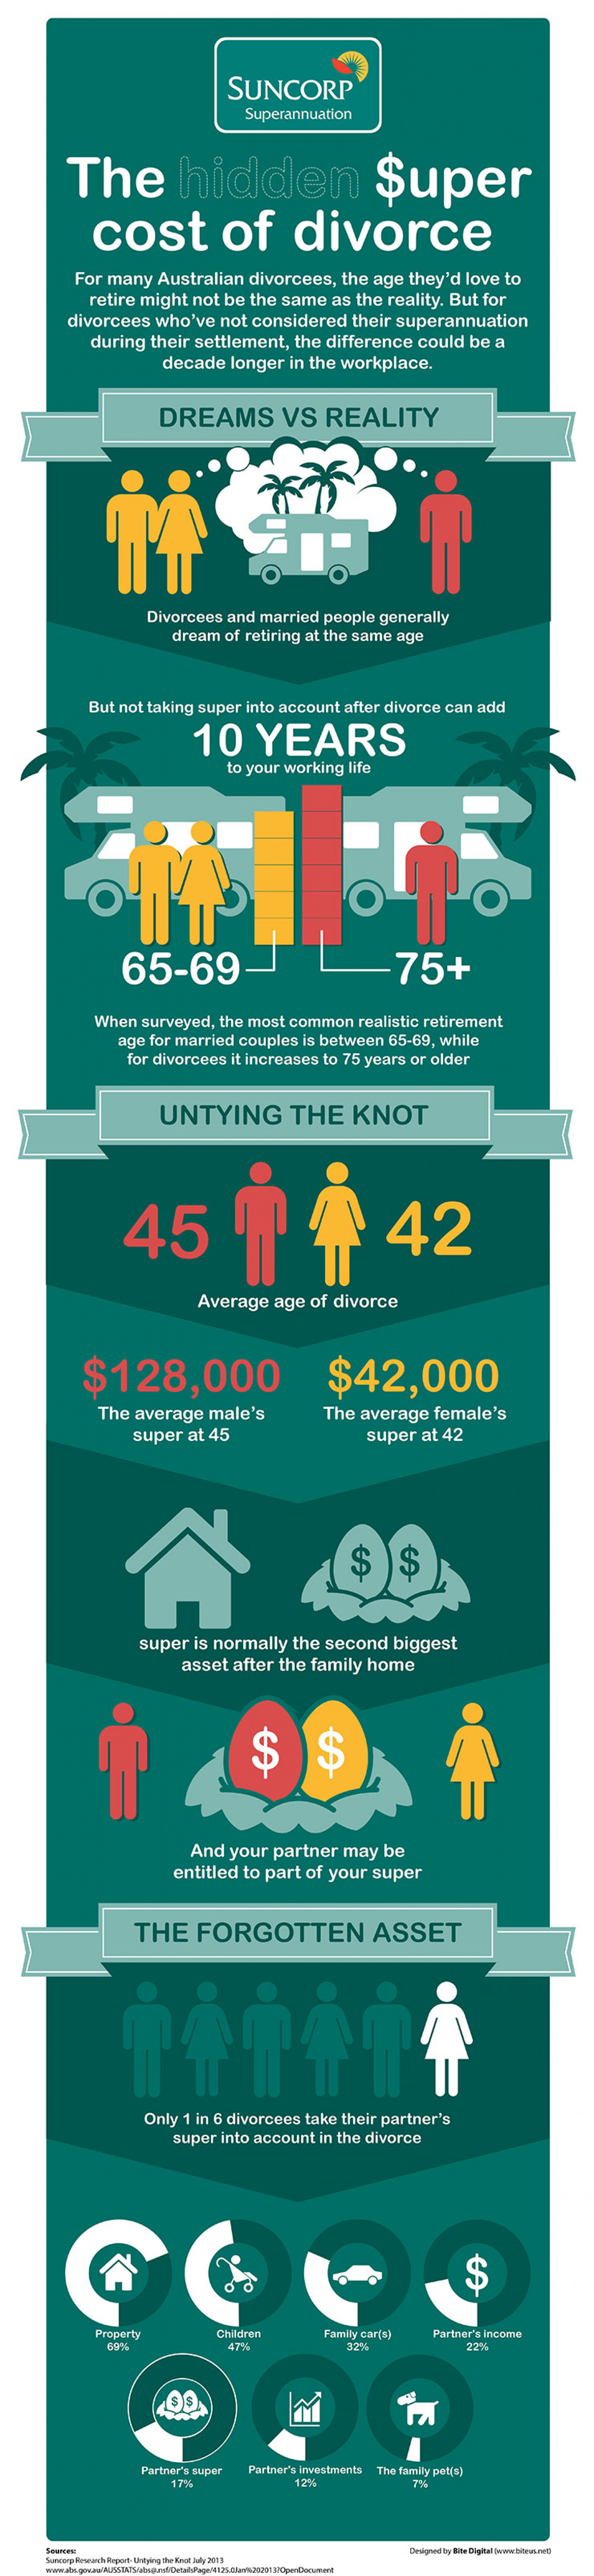 The Hidden Cost of Divorce Infographic